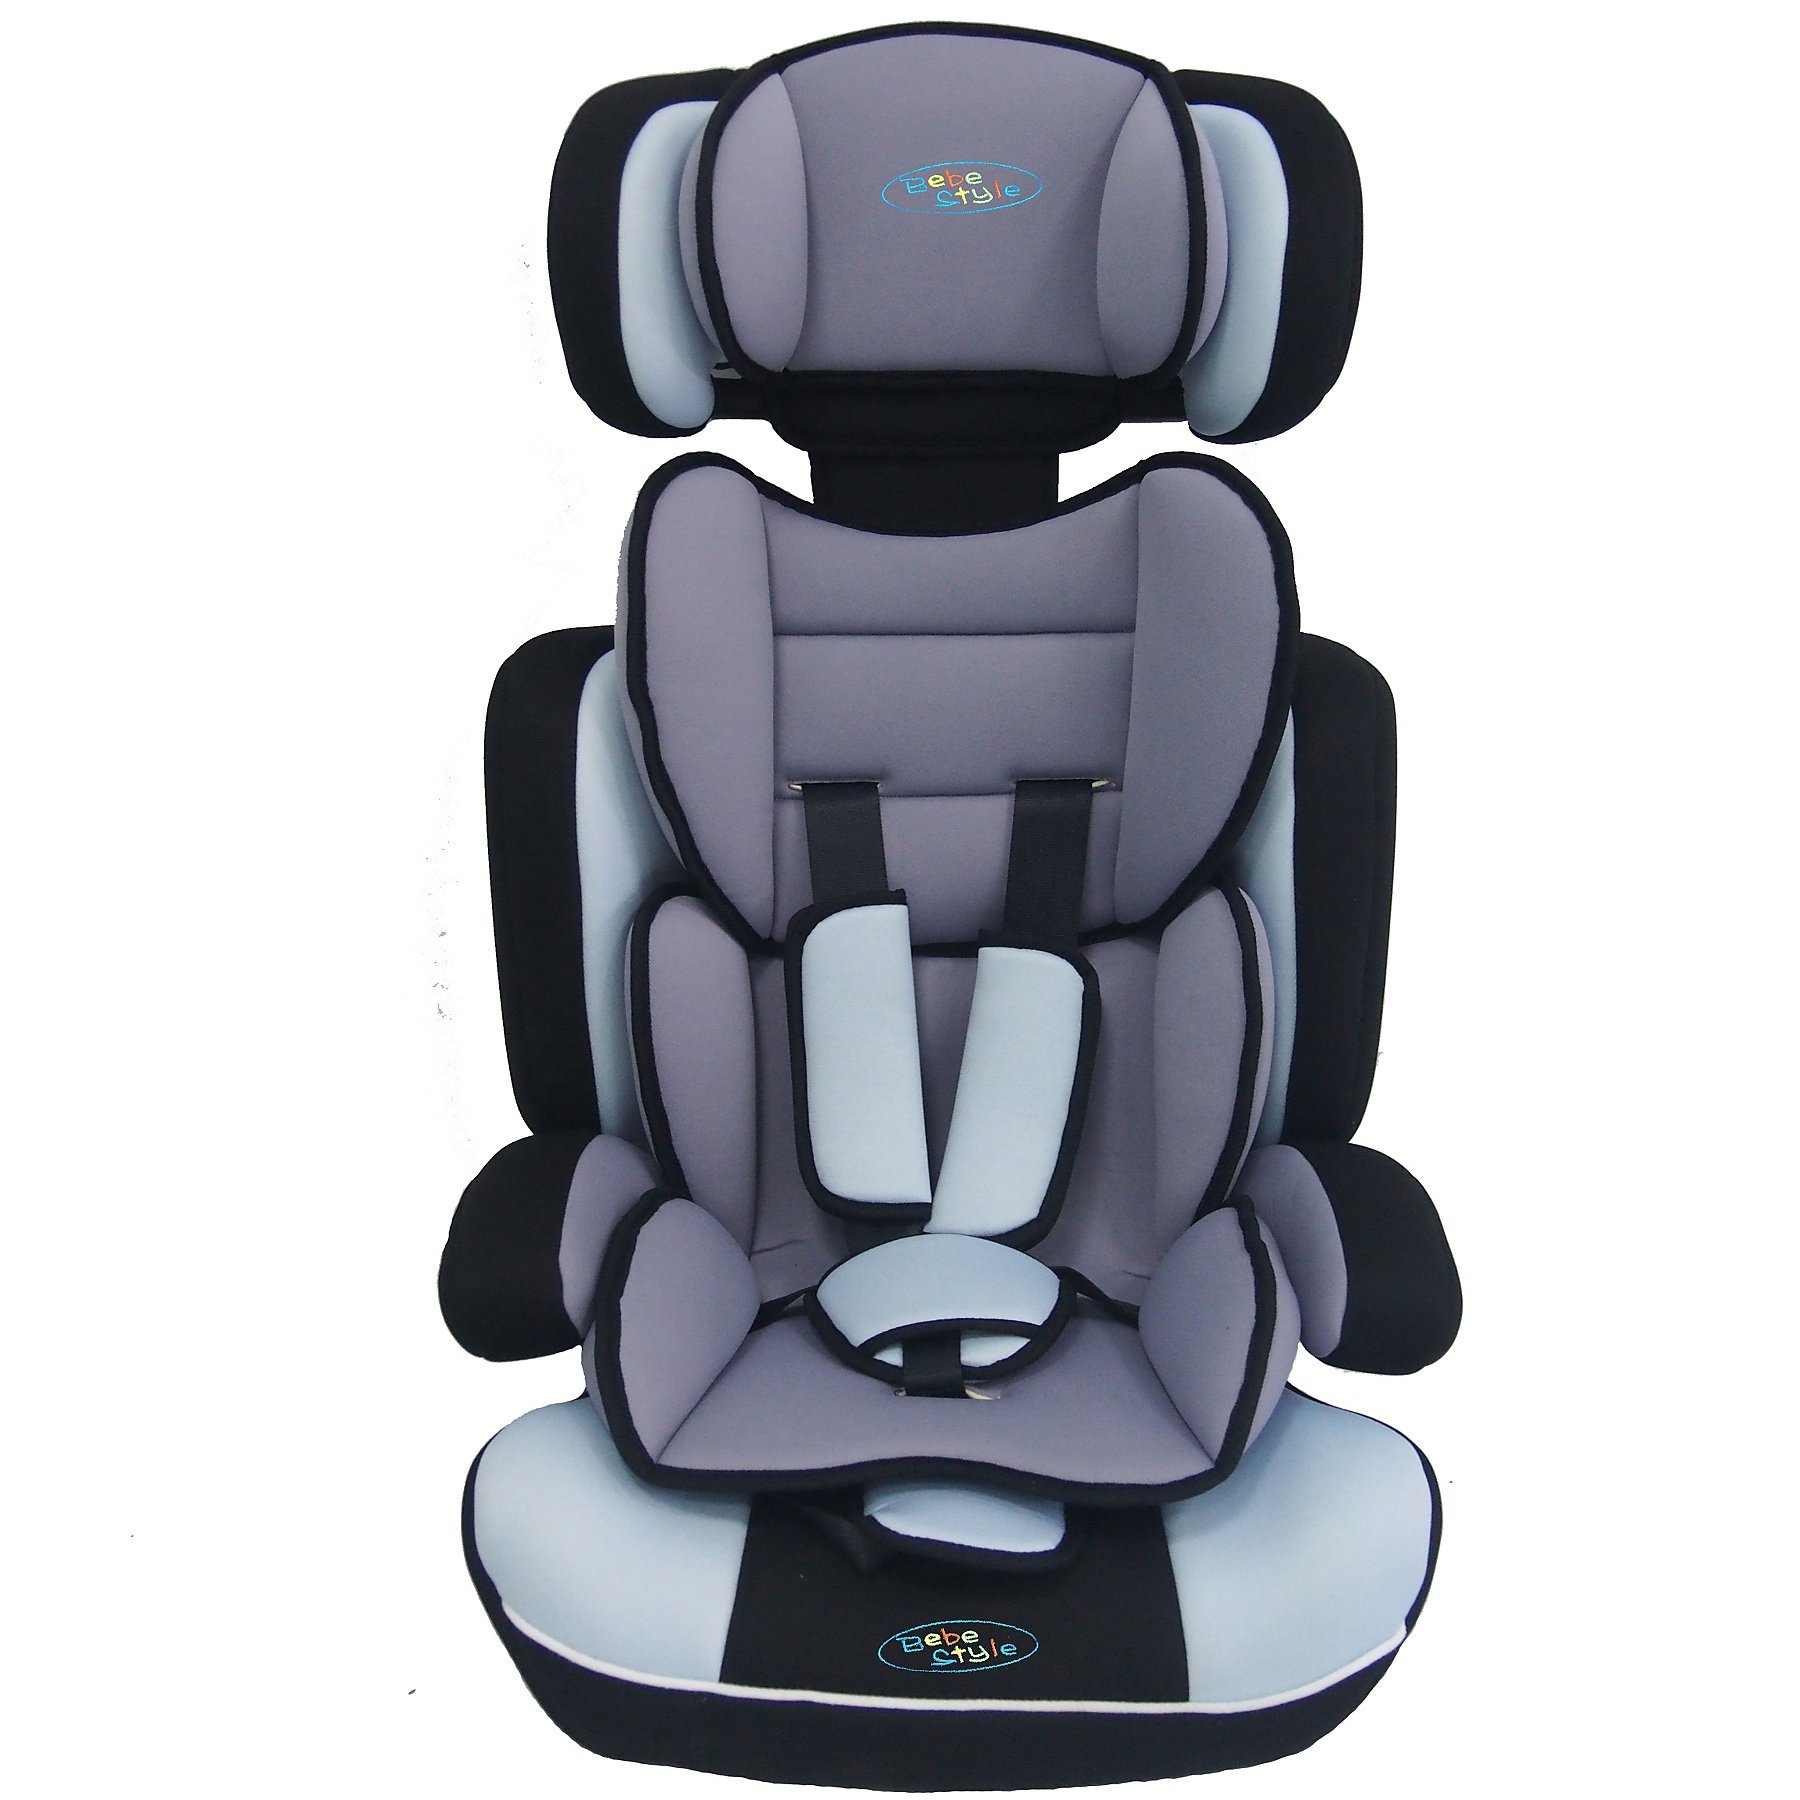 26b818f6ba81 Bebe Style Convertible Group 1-2-3 Baby Child Car & Booster Seat. Reset